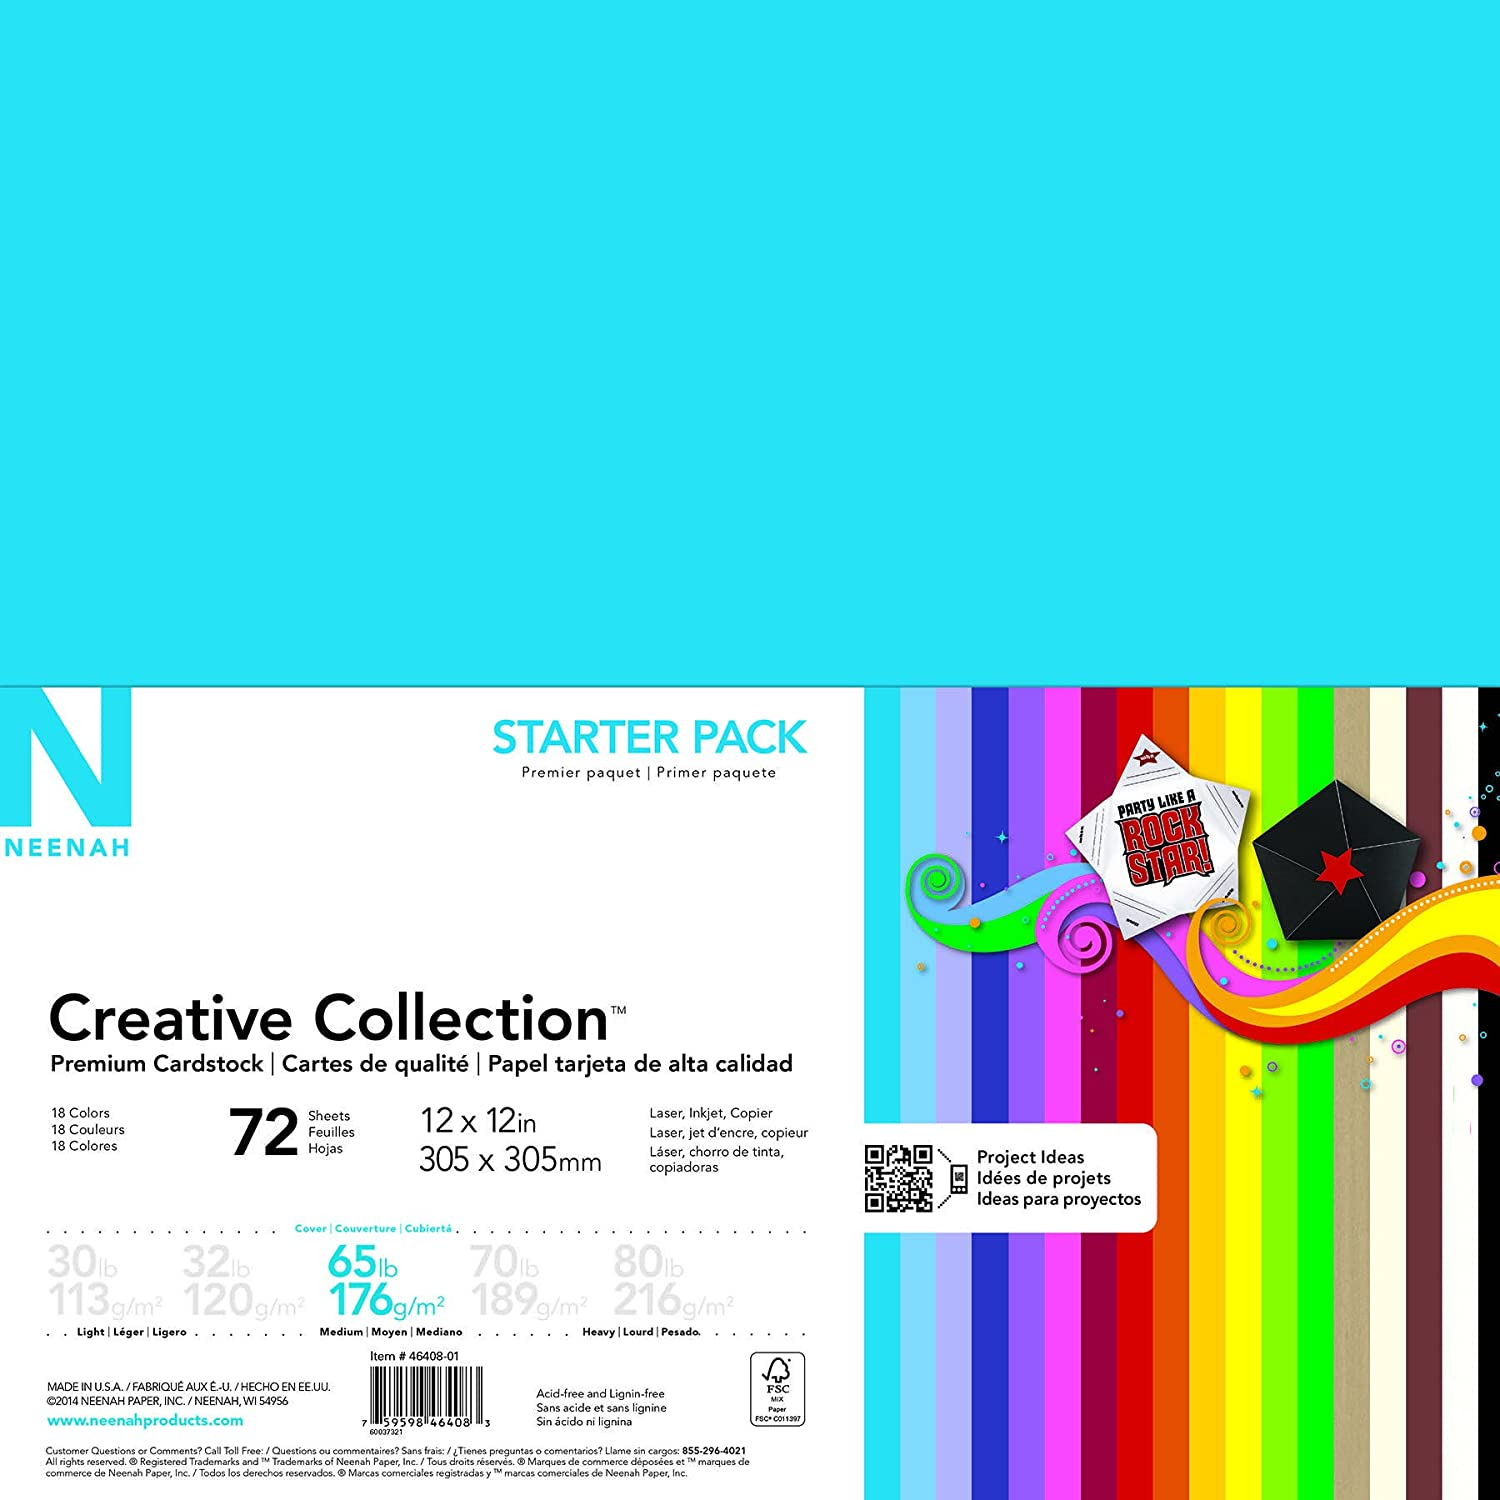 Neenah Creative Collection Specialty Cardstock Starter Kit, 12 x 12, 65 lb, 18-Color Assortment, 72 Sheets (46408-02) 12 x 12 Wausau Paper